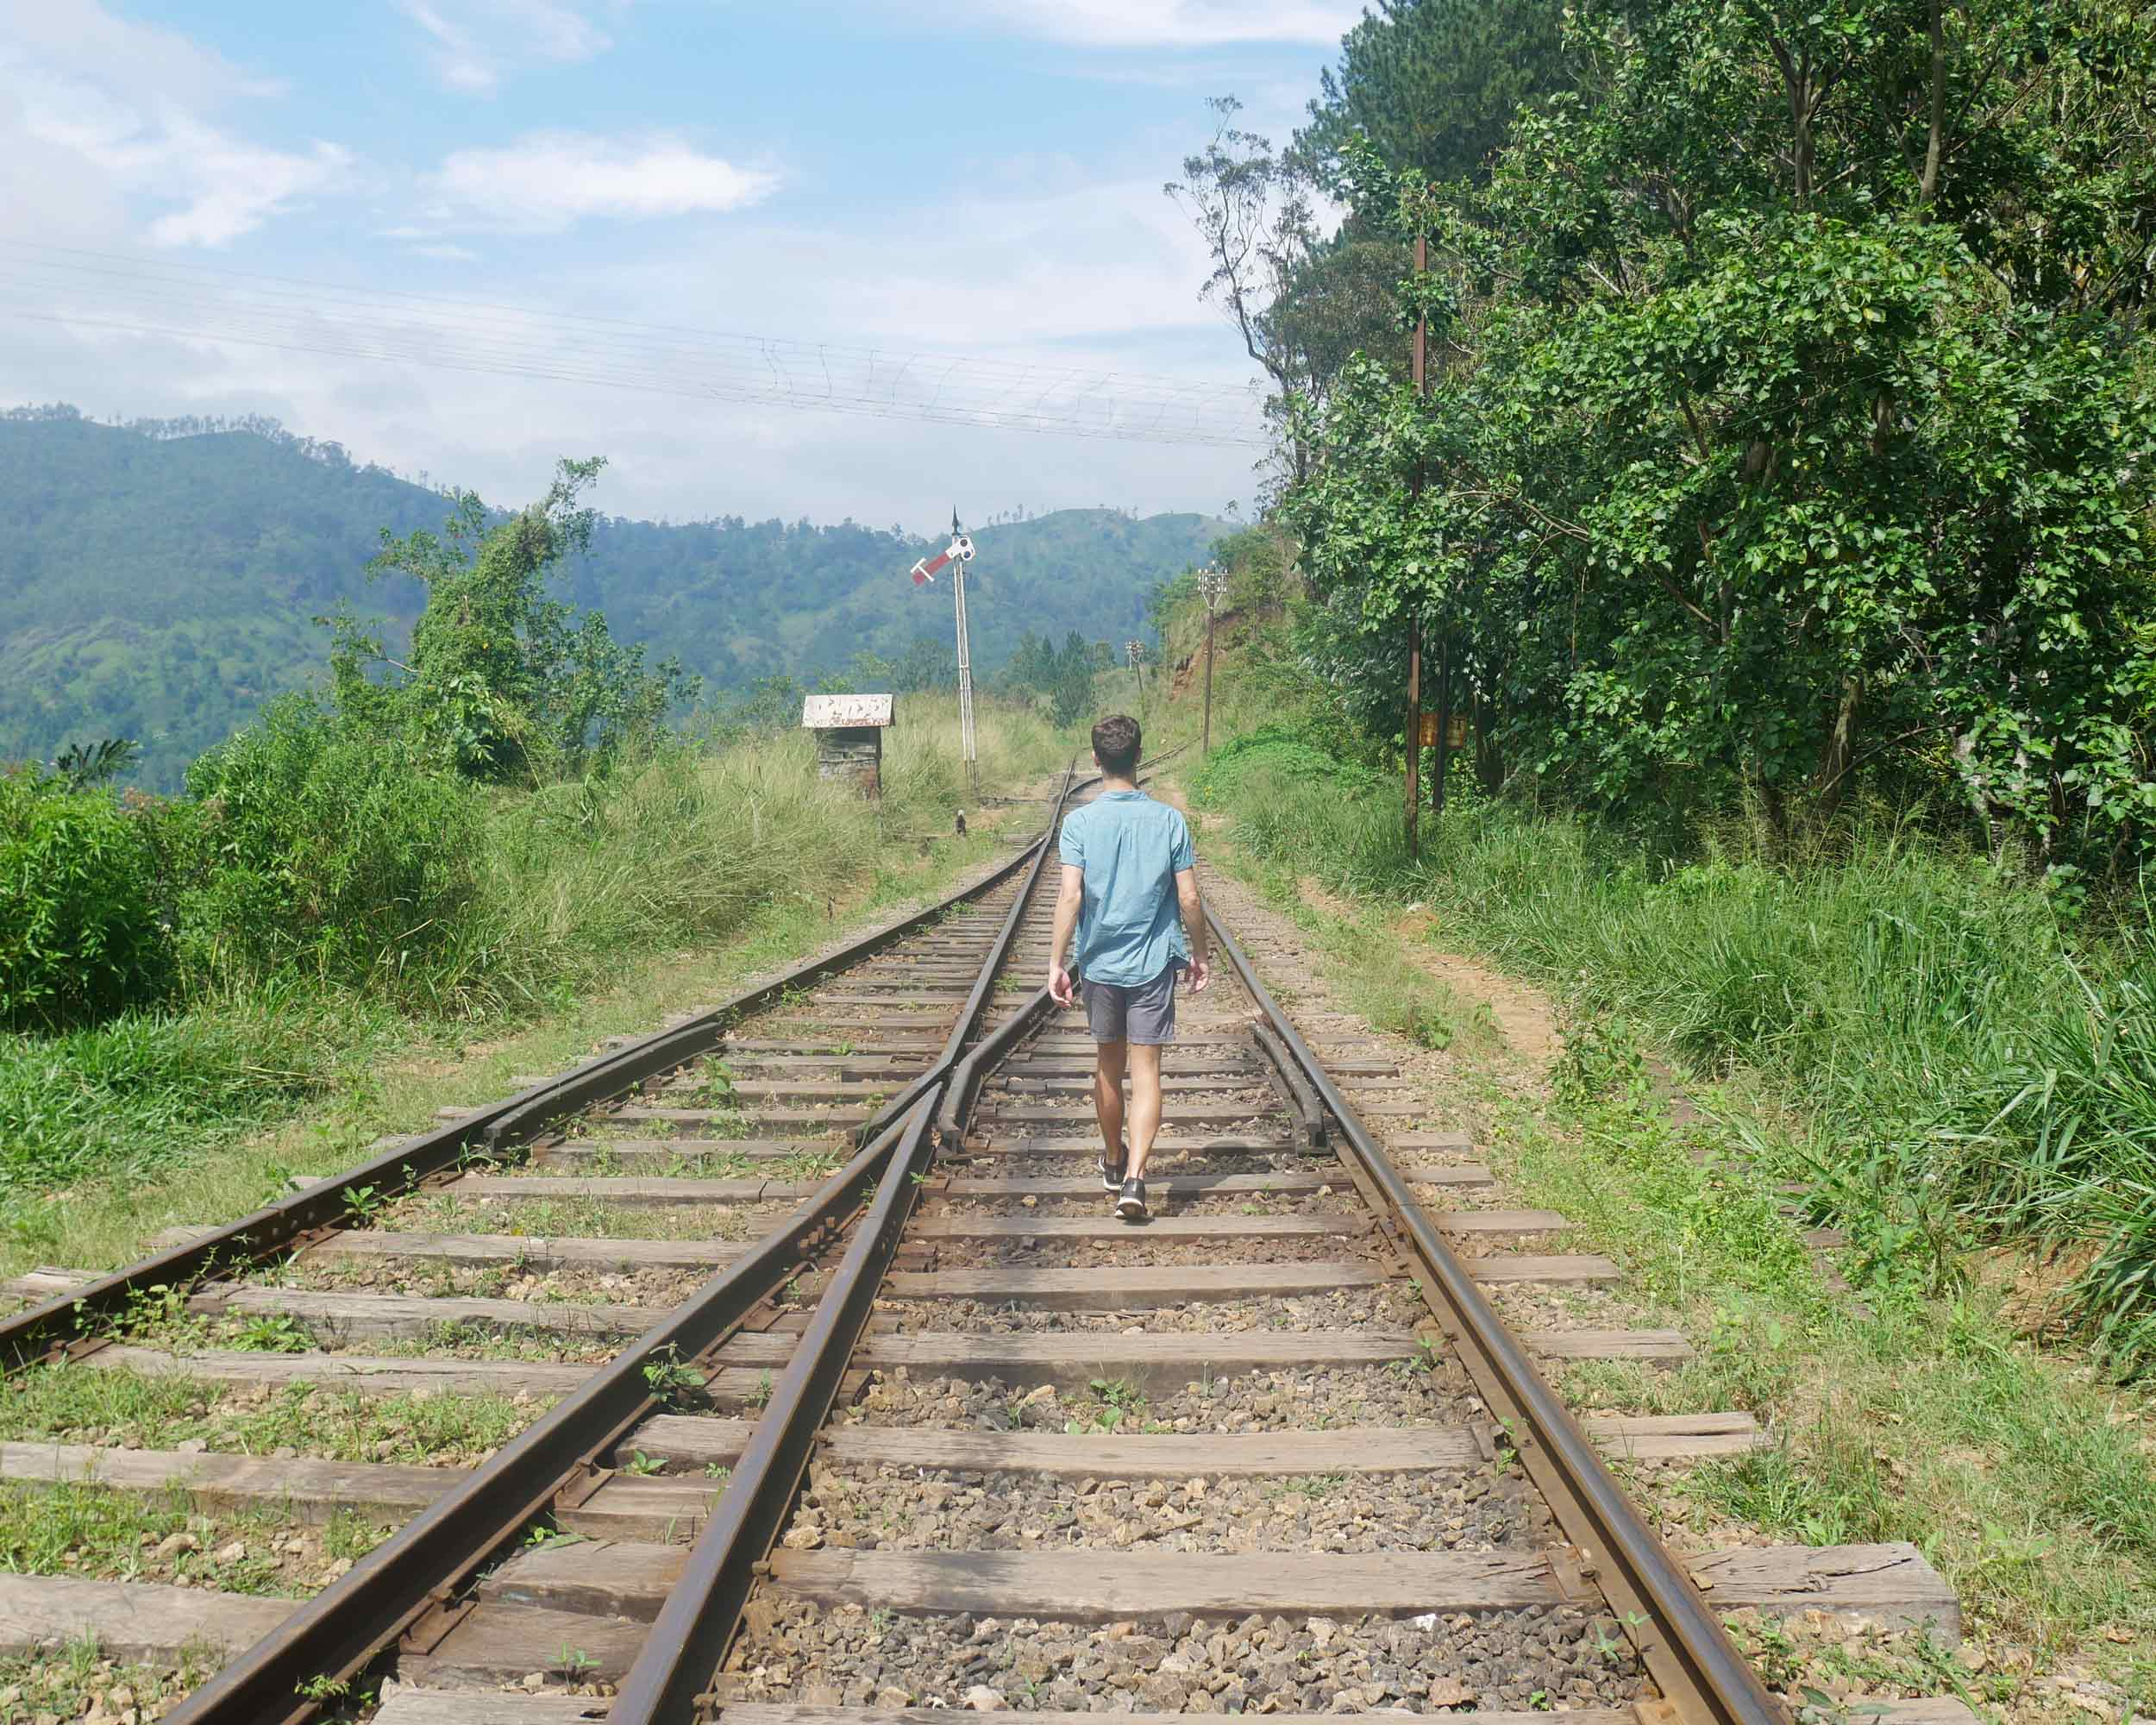 Taking the shortcut via the train tracks, which led right into town from our guesthouse.